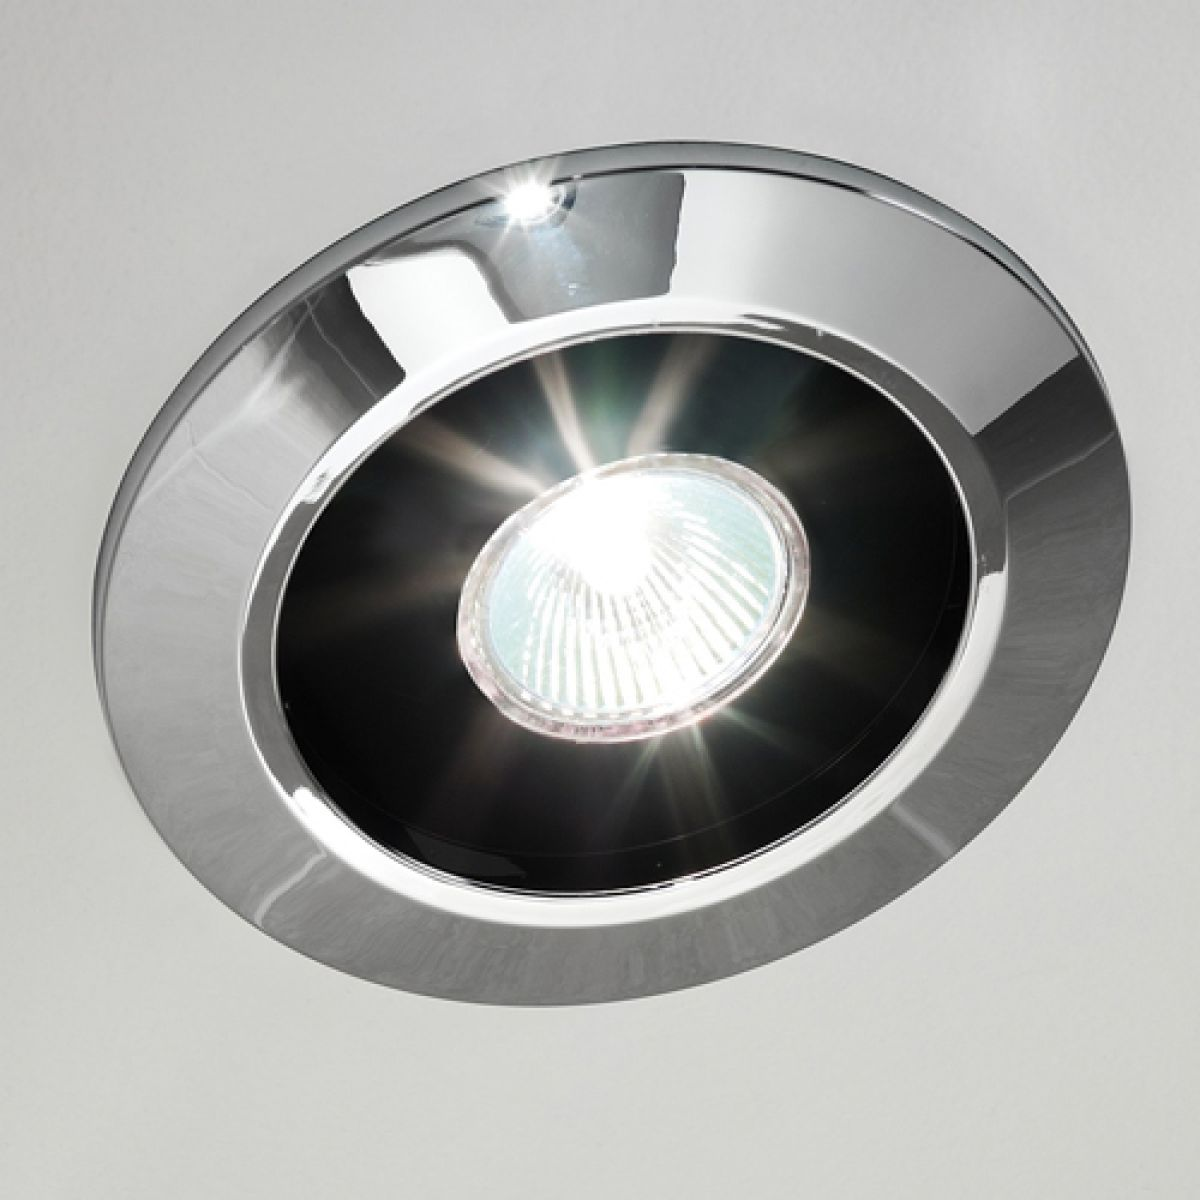 Decorate your bathroom with extractor fan ceiling - Bathroom light with extractor fan ...